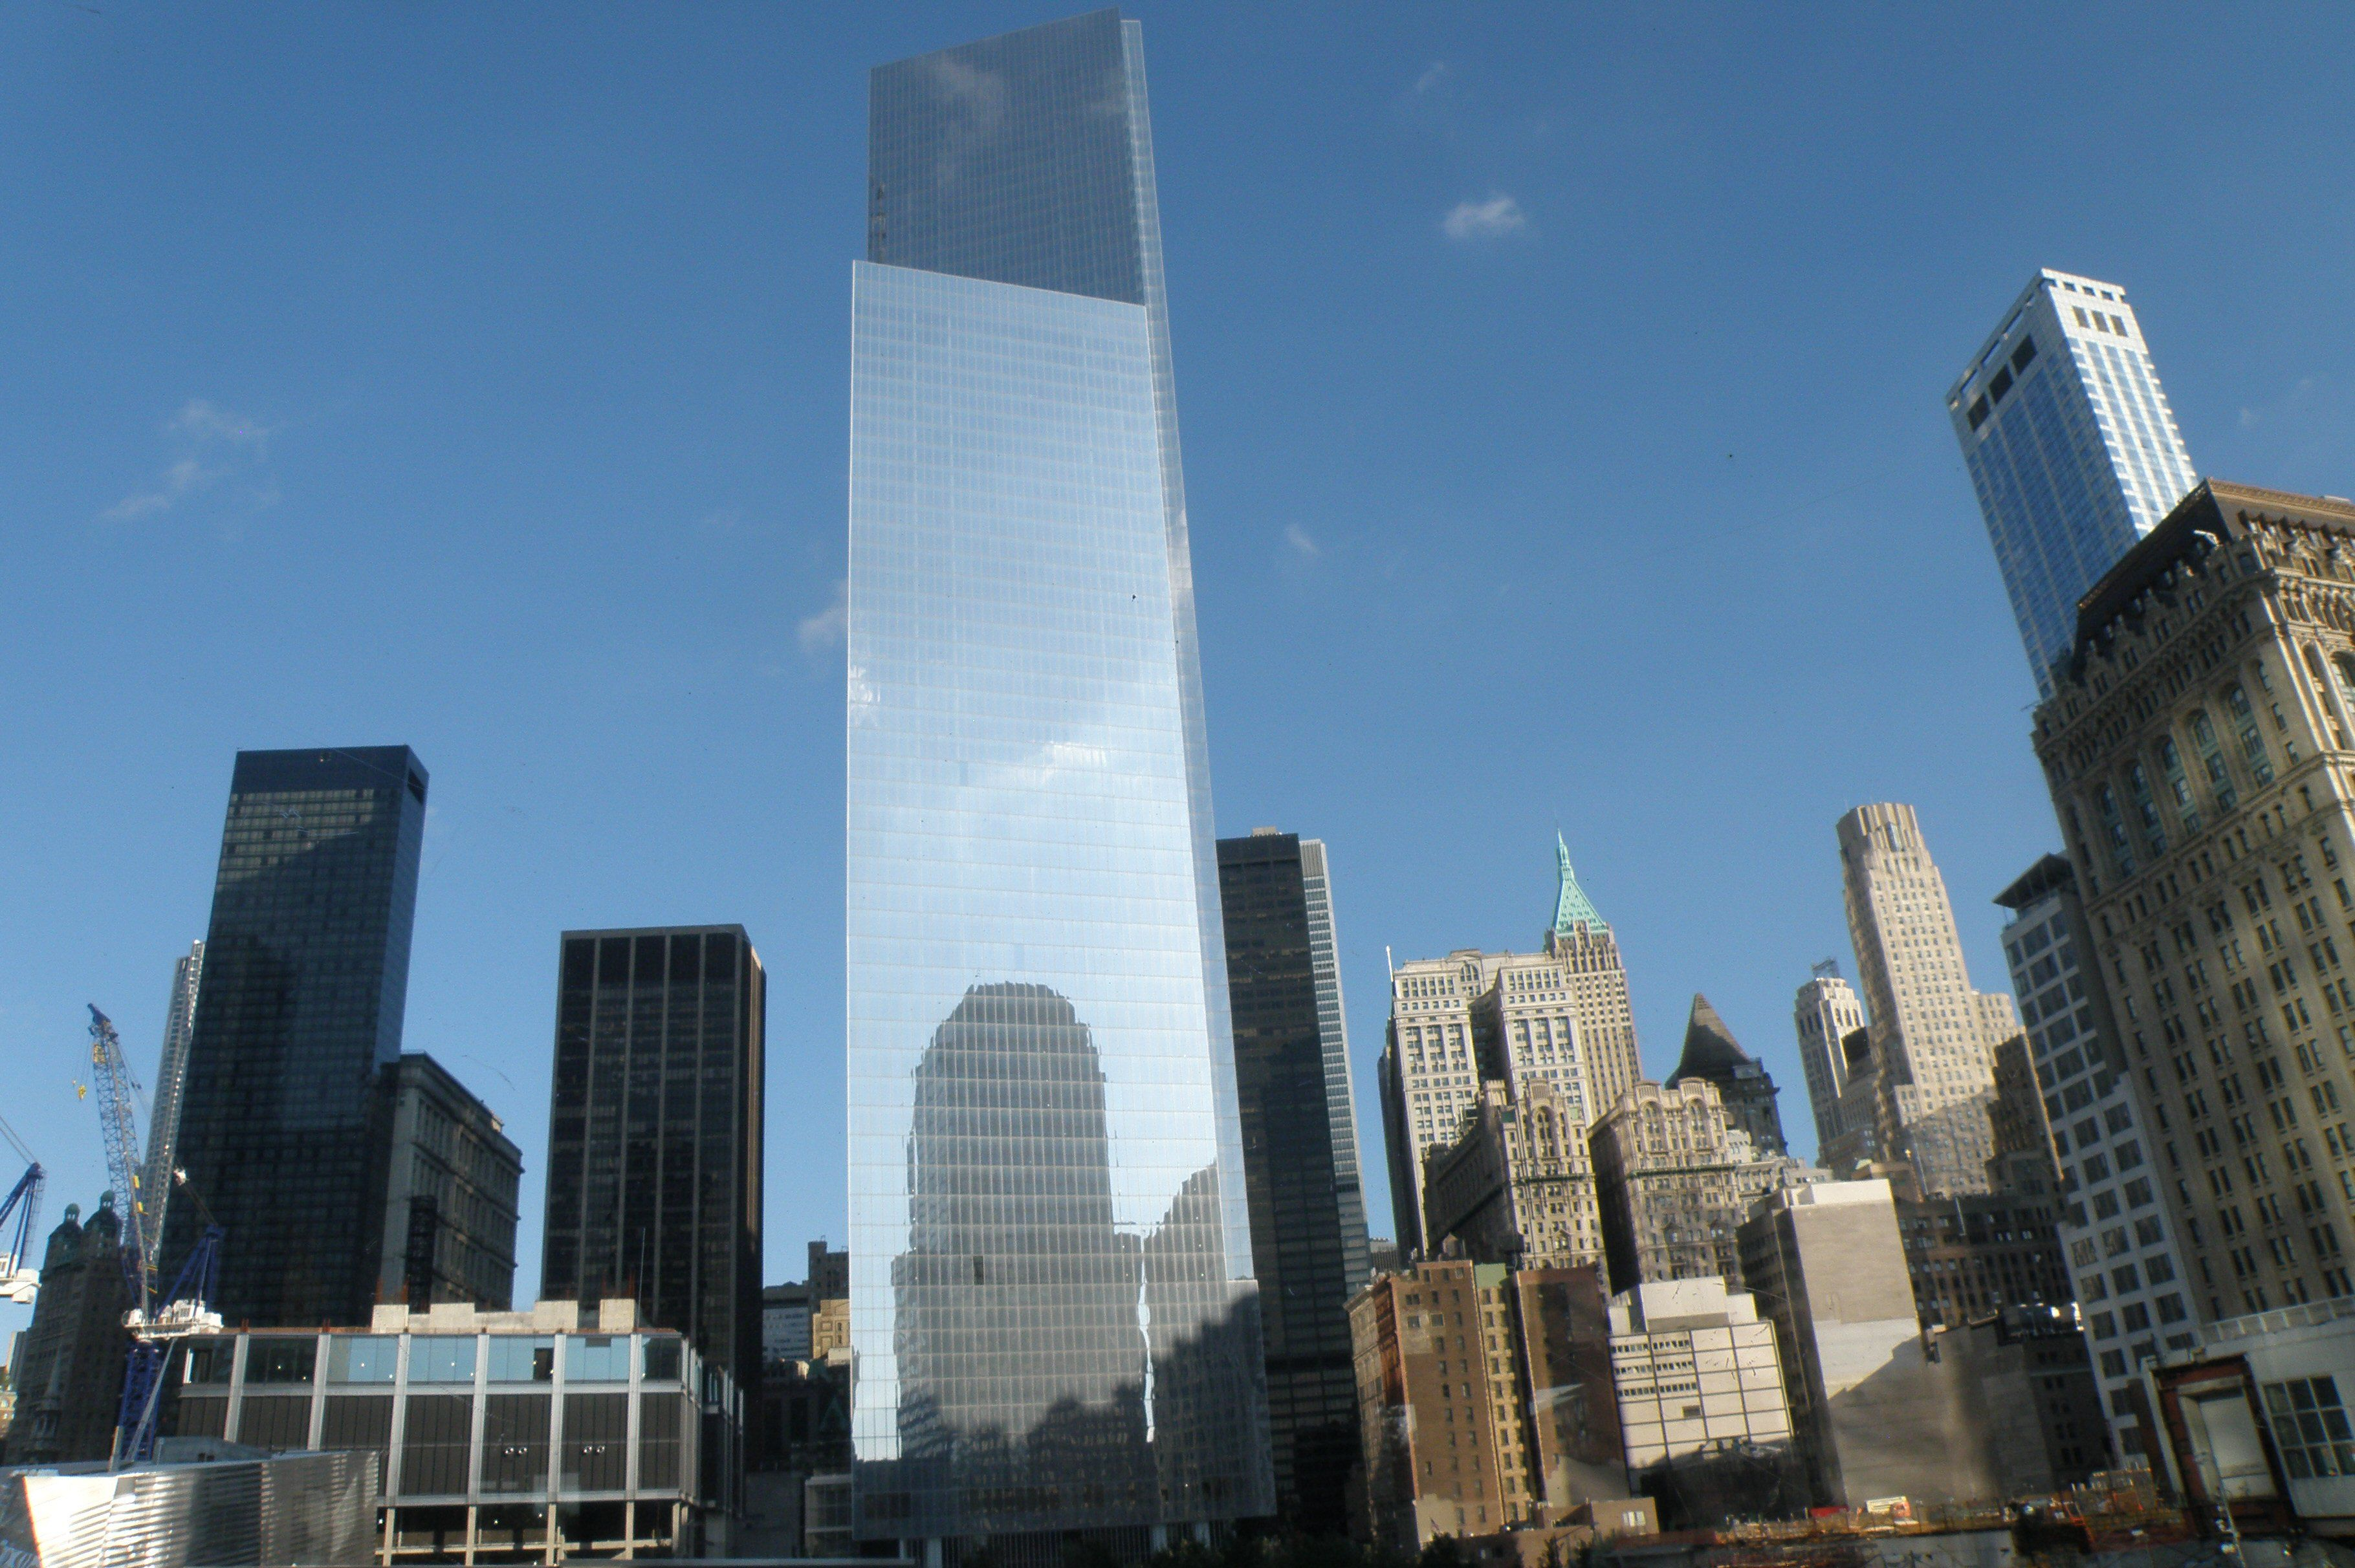 3 World Trade Center Designed By Richard Rogers Almost Completed Classy What They Are Building At Ground Zero NYC 9991 10